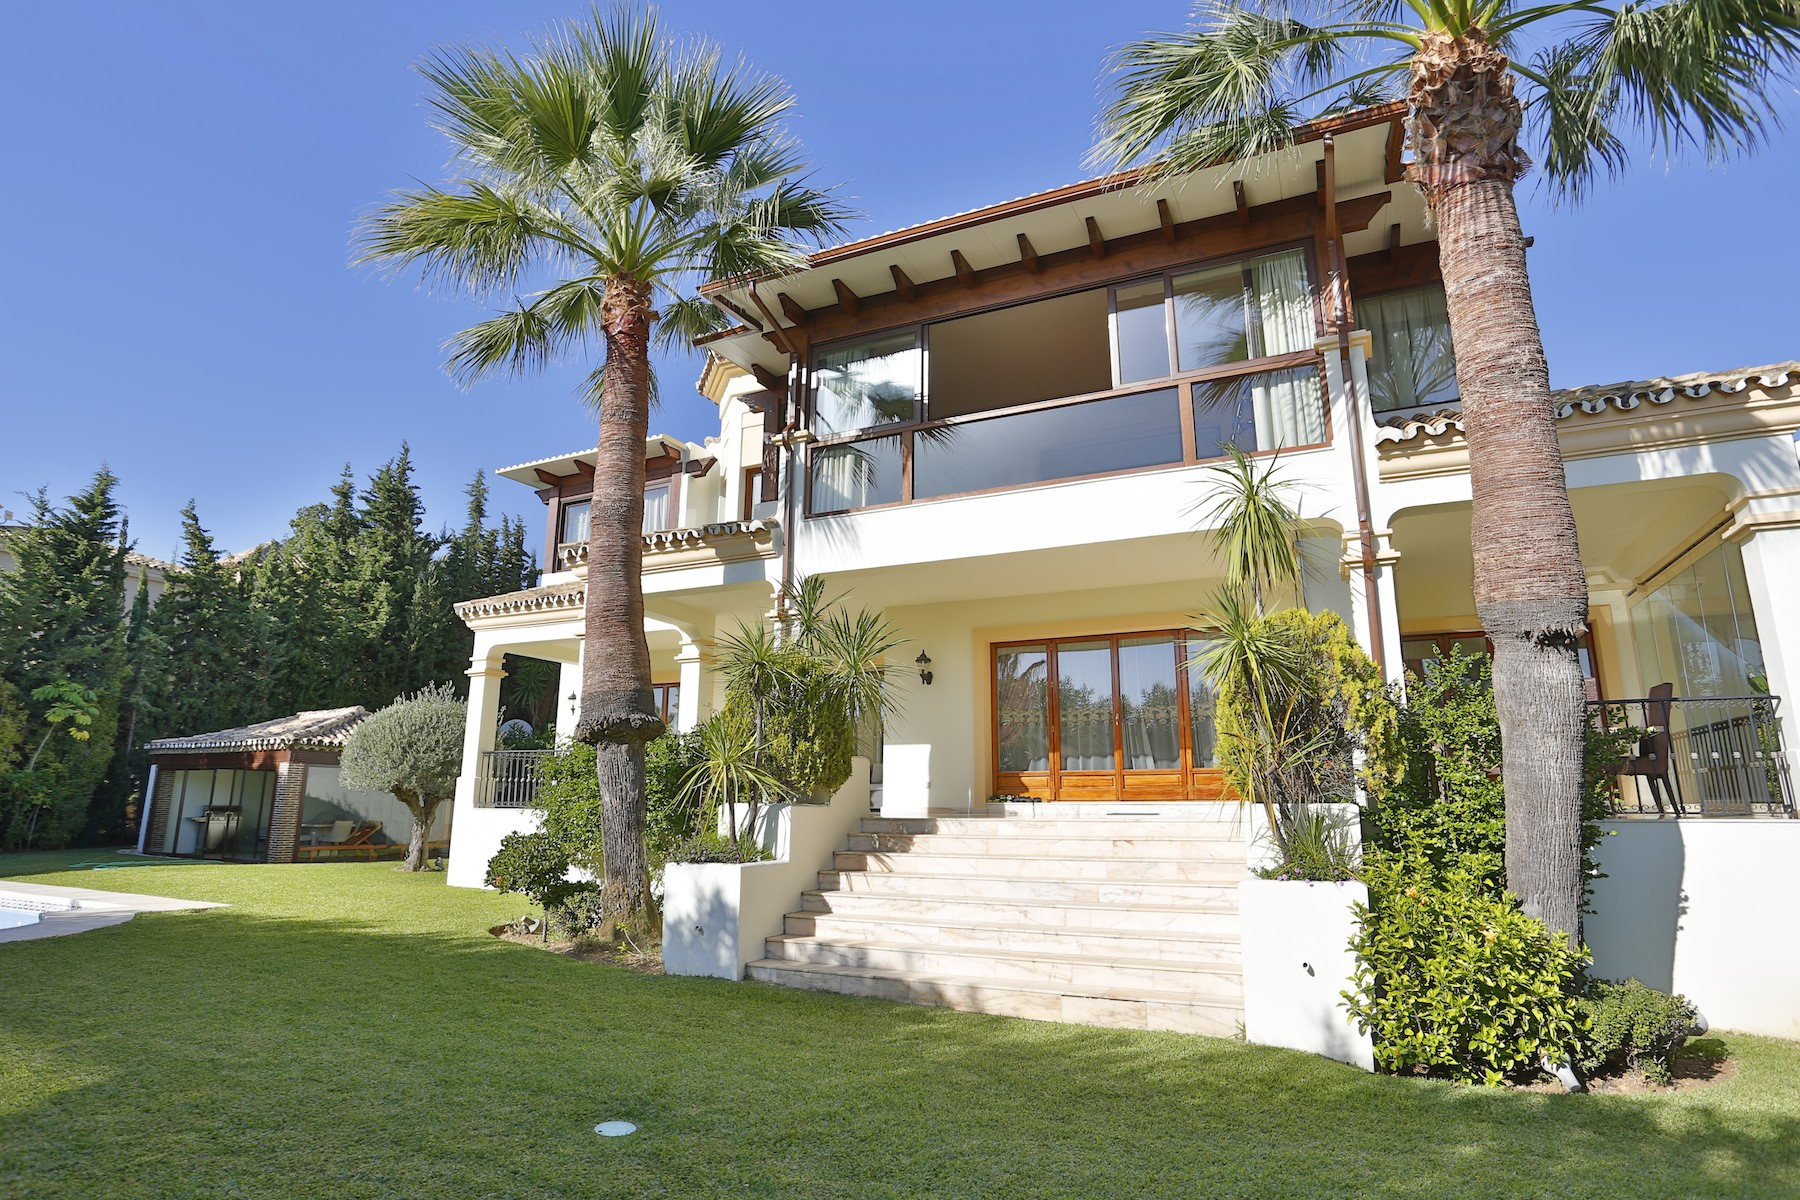 Casa para uma família para Venda às Elegant villa situated in the best sought after residential area in Marbella Sierra Blanca, Marbella, Costa Del Sol, 29600 Espanha